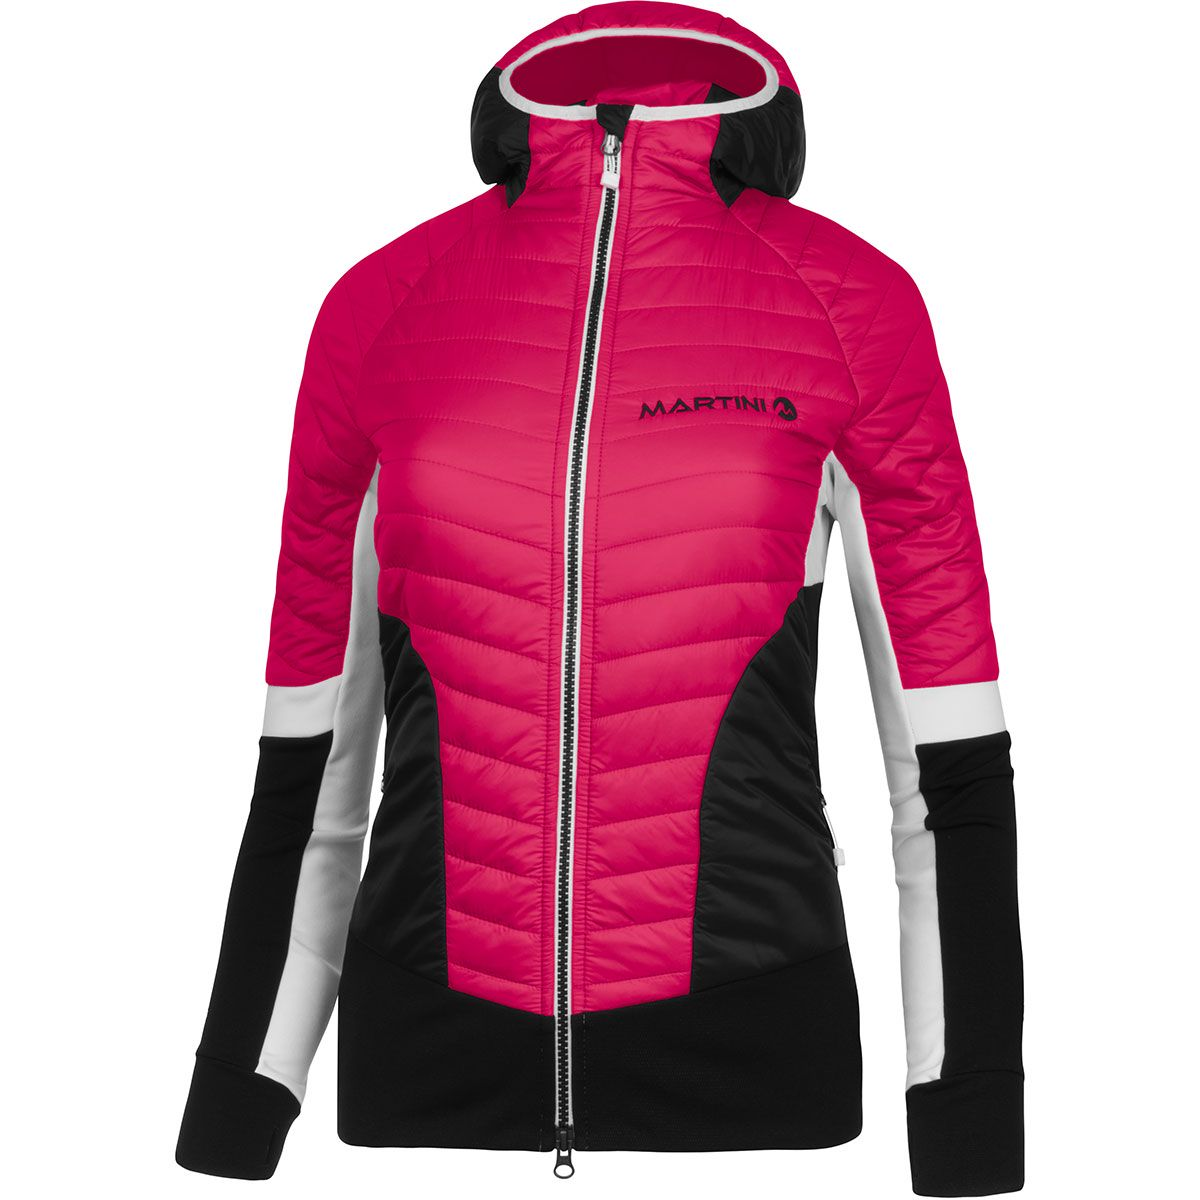 Martini Damen Intensity Jacke (Größe XS, Pink) | Isolationsjacken > Damen